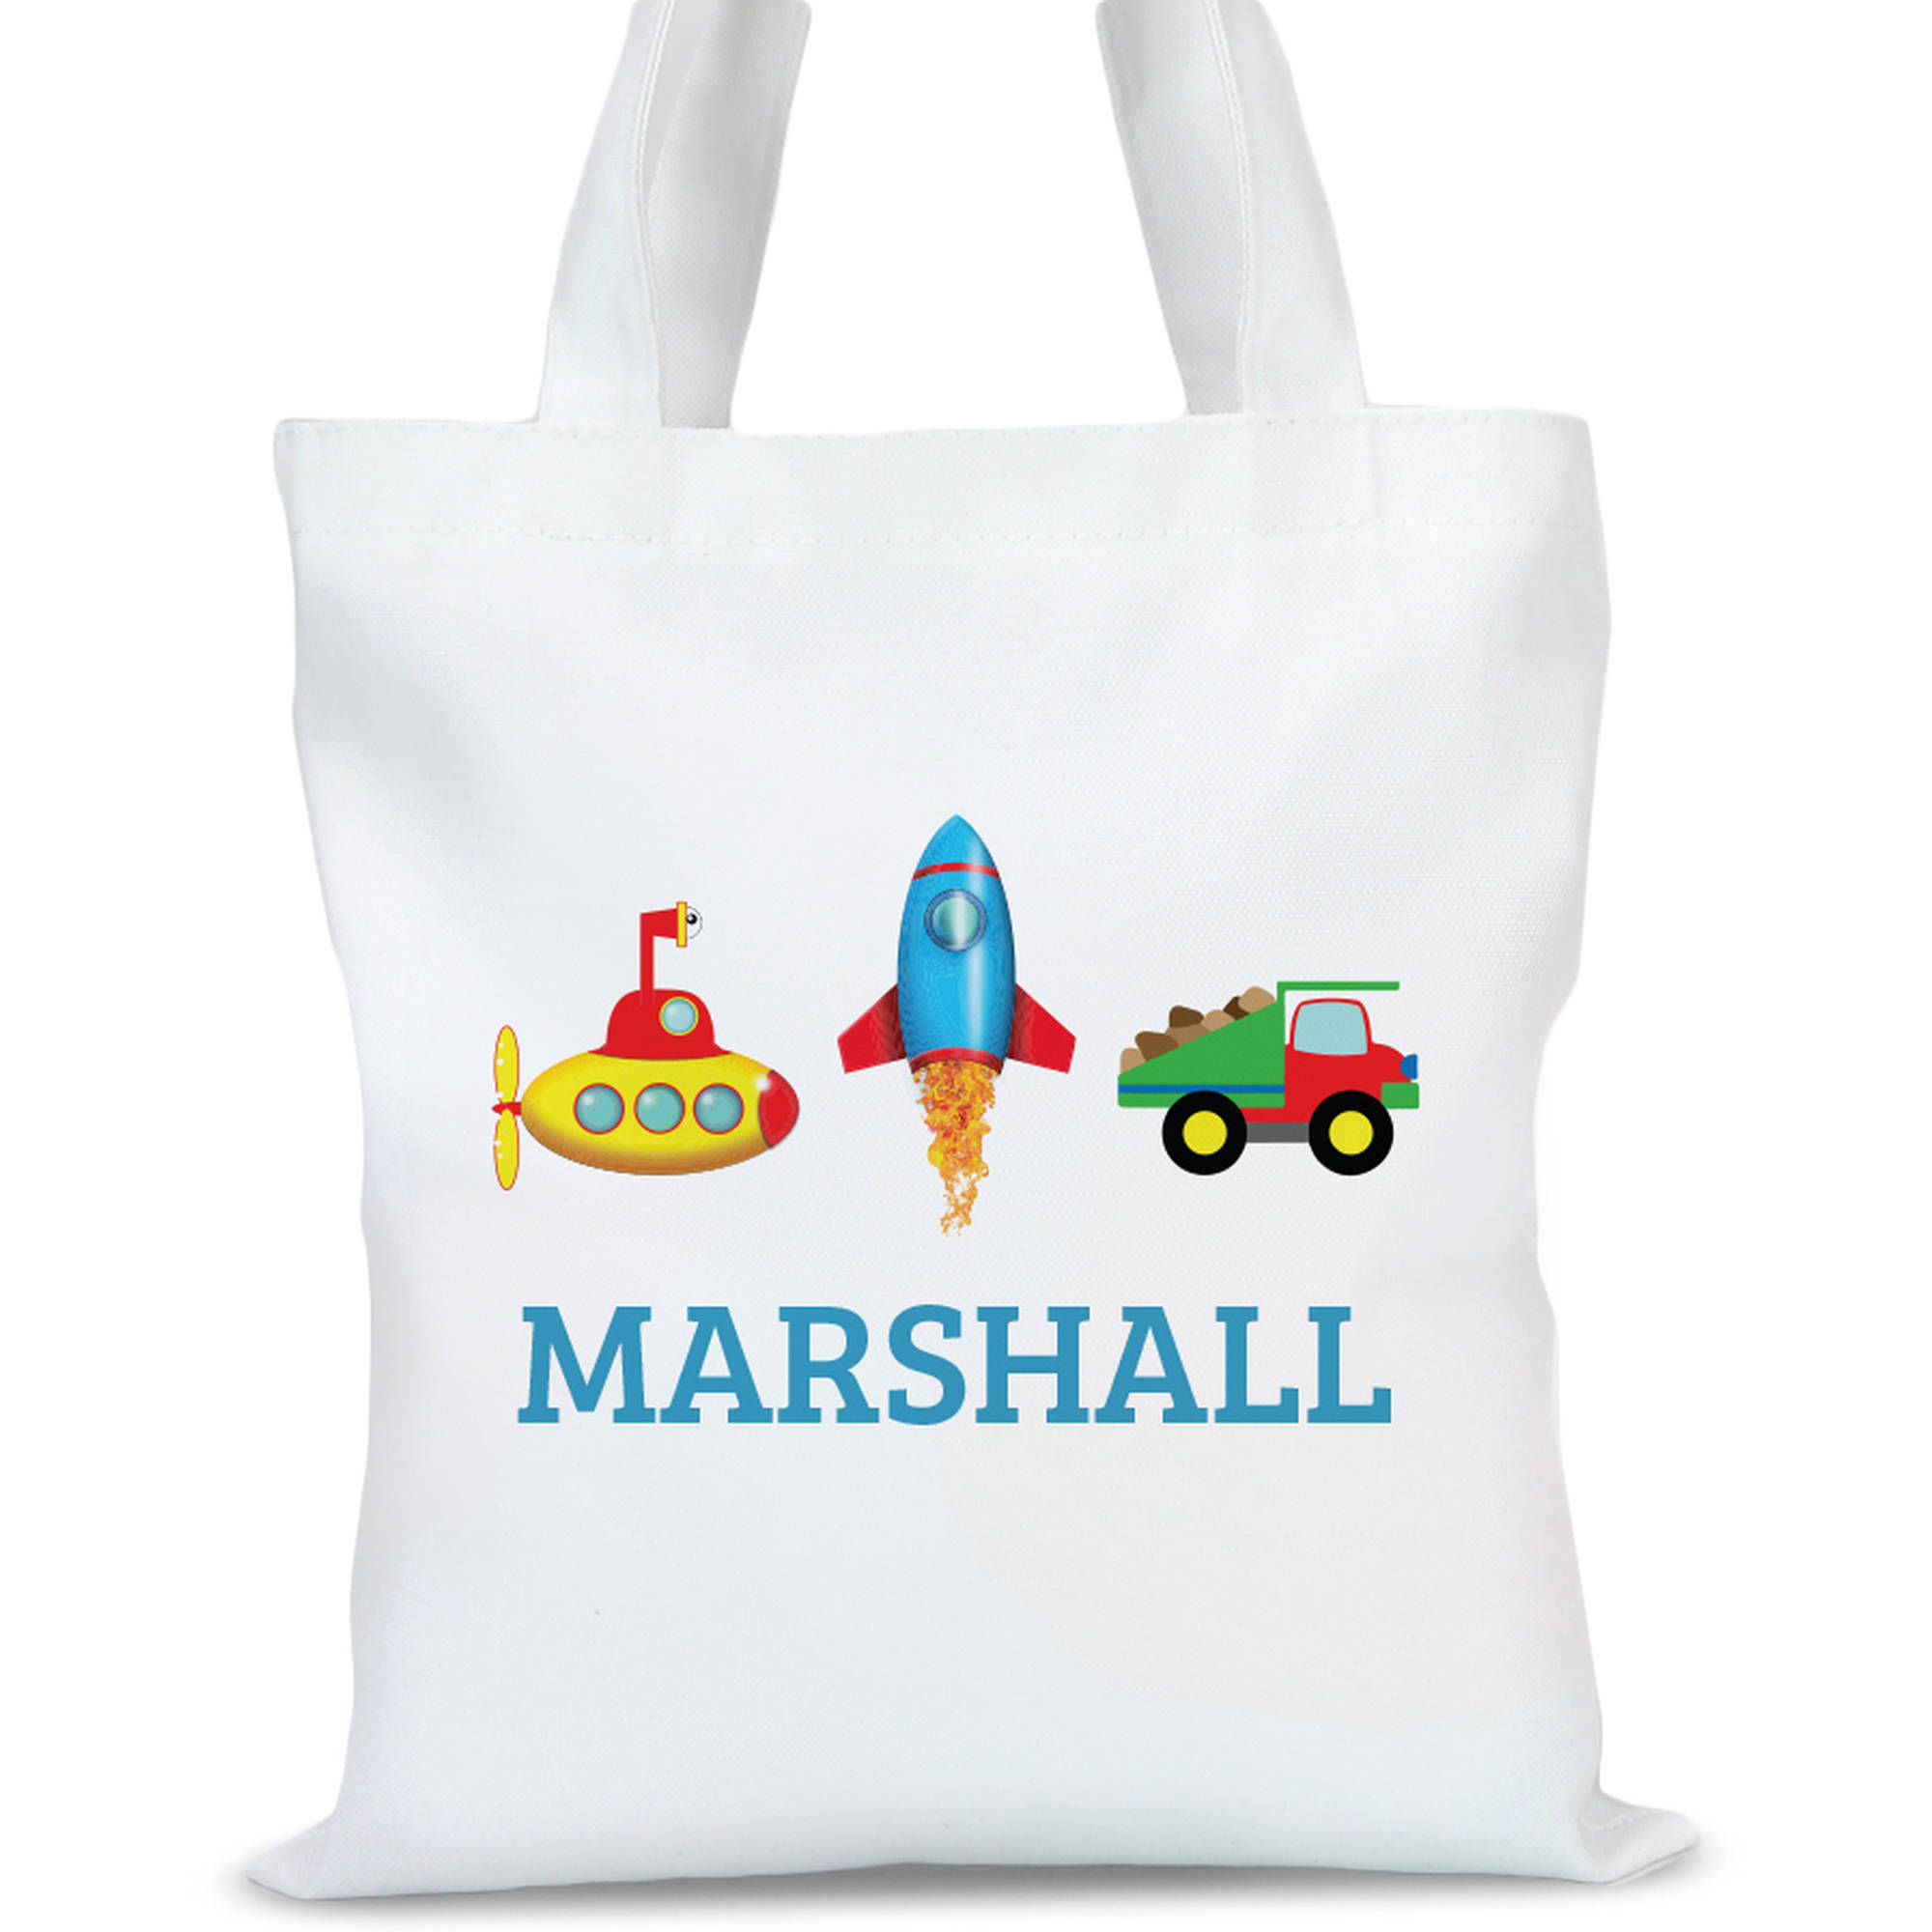 "Personalized Transportation Kids Tote Bag, Sizes 11"" x 11.75"" and 15"" x 16.25"""